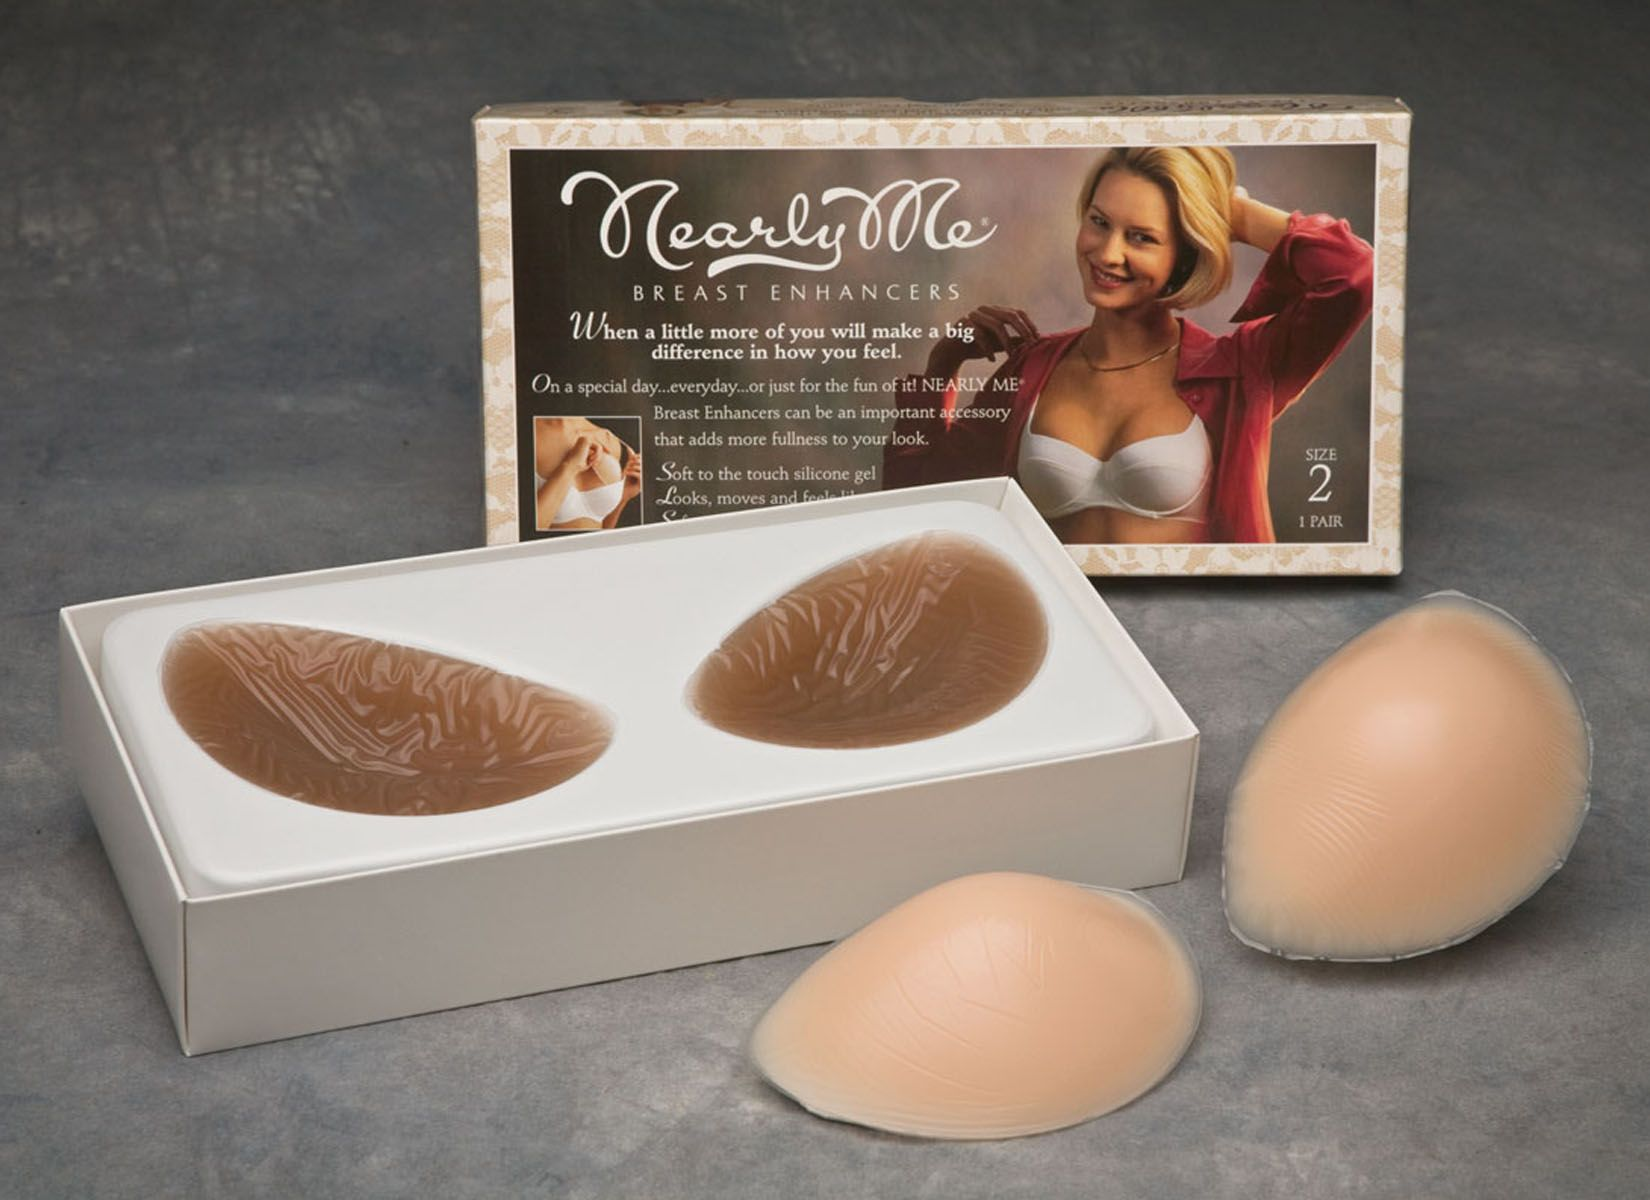 ece735c694f Nearly Me Silicone Breast Enhancers - True Enhancement